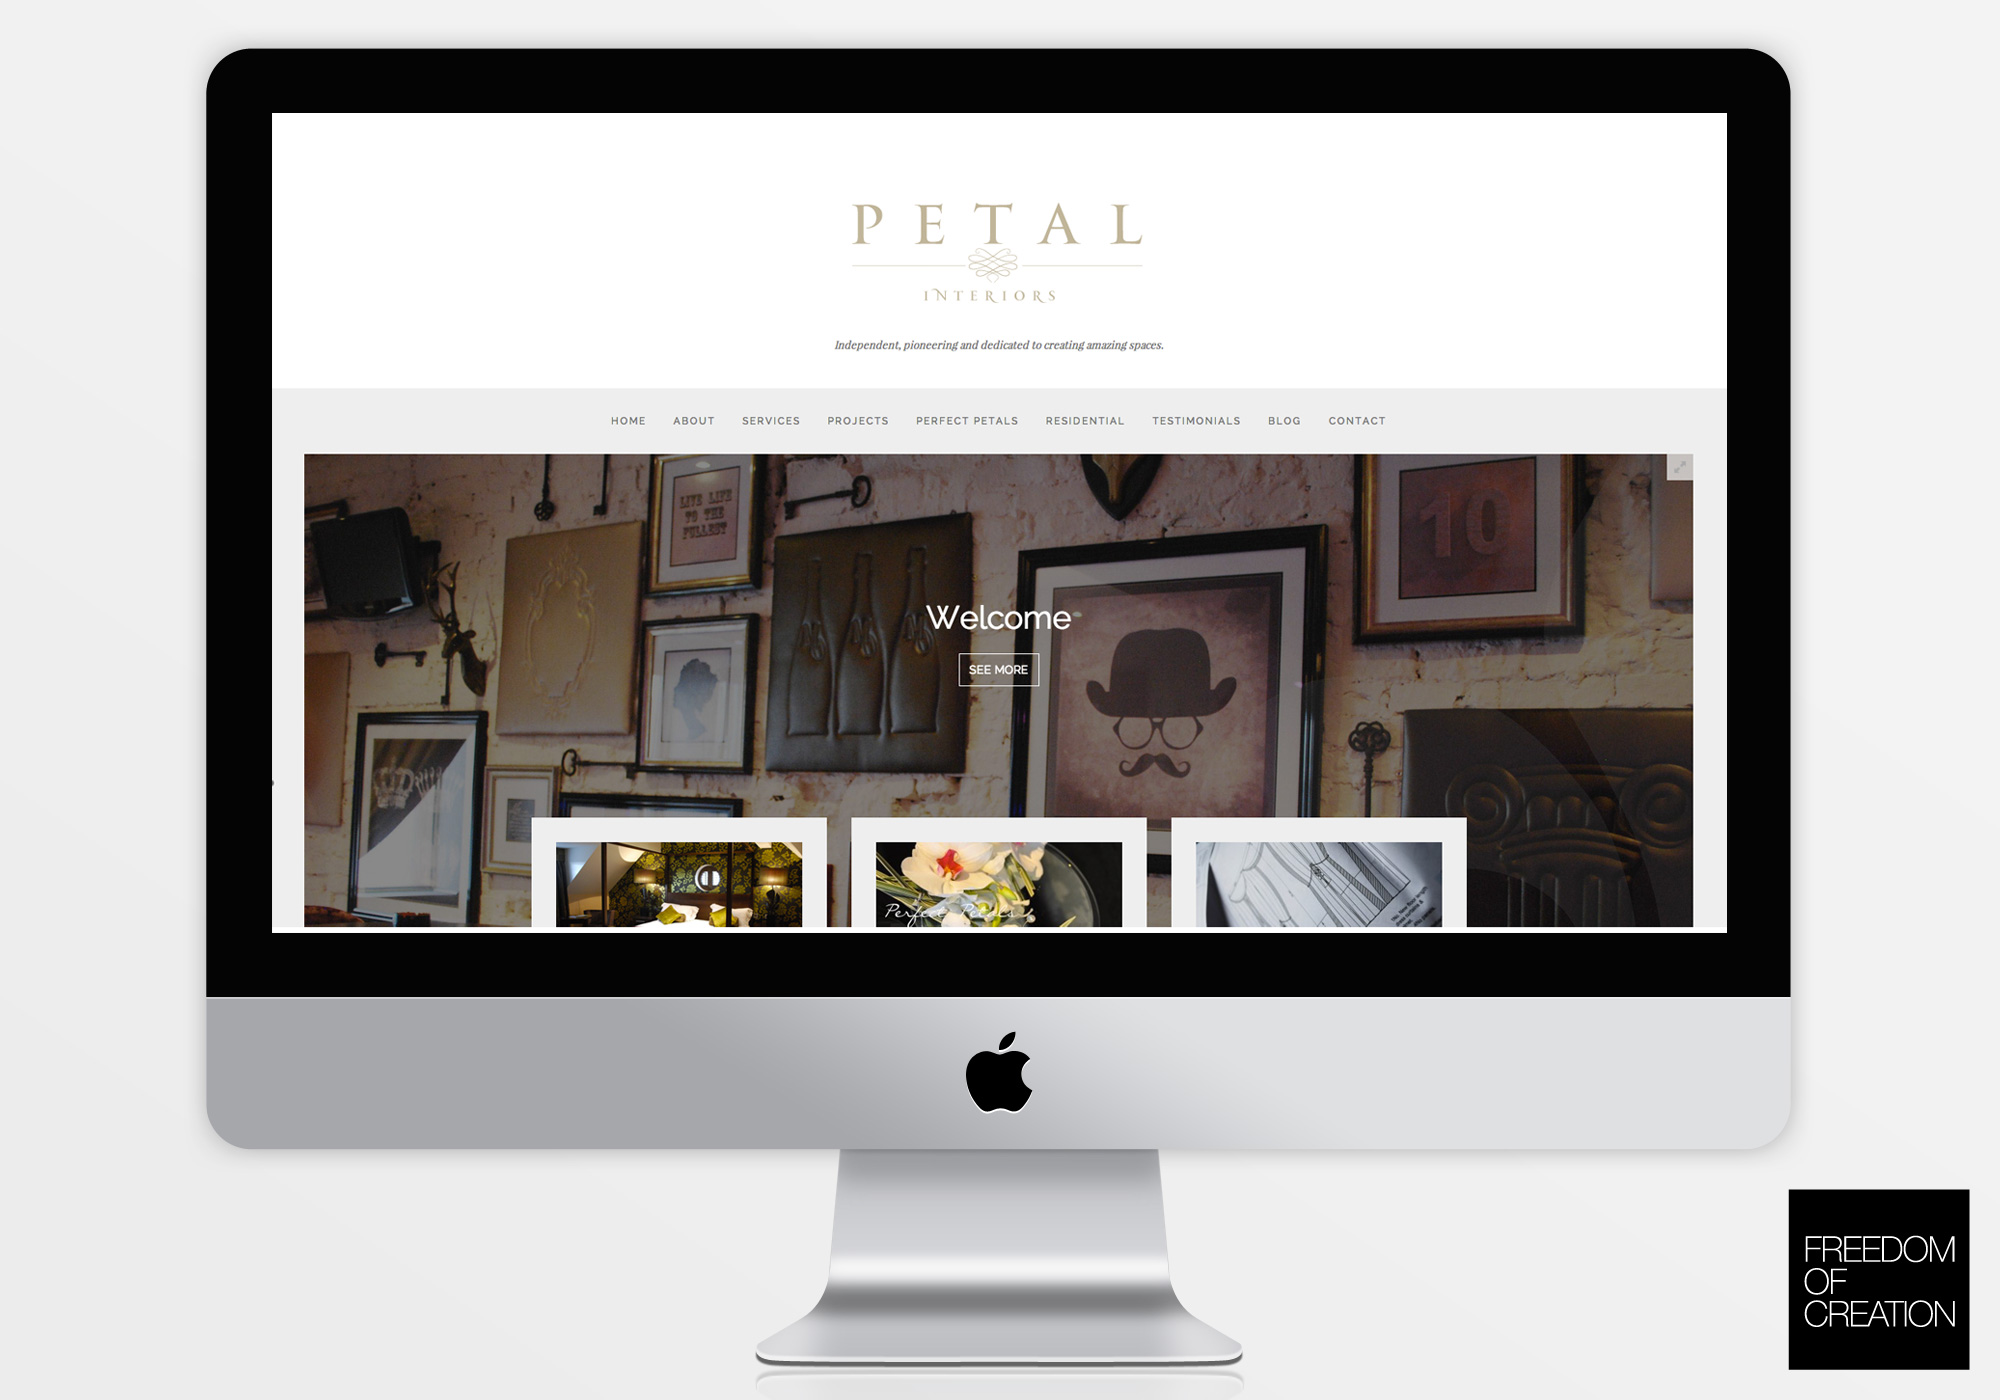 Petal interiors website freedom of creation old for Carter wells interior design agency